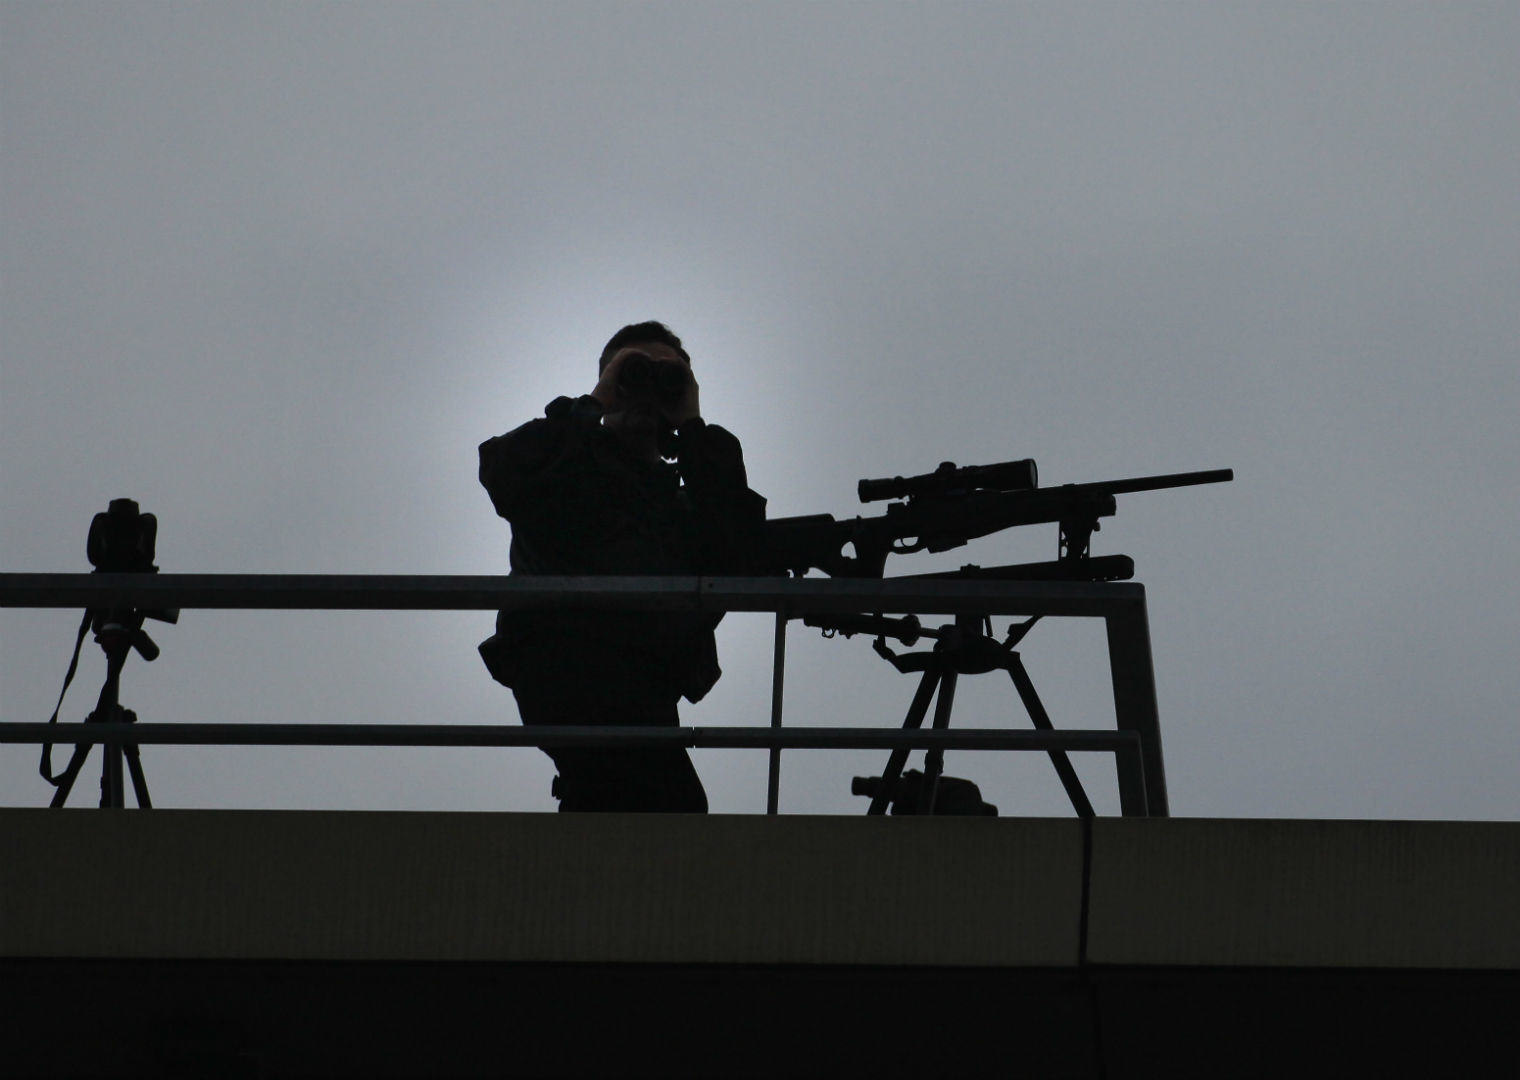 Manchester Police Gave A Bizarre Explanation For Armed Snipers At Anti Austerity Protest UNILAD snipers 25